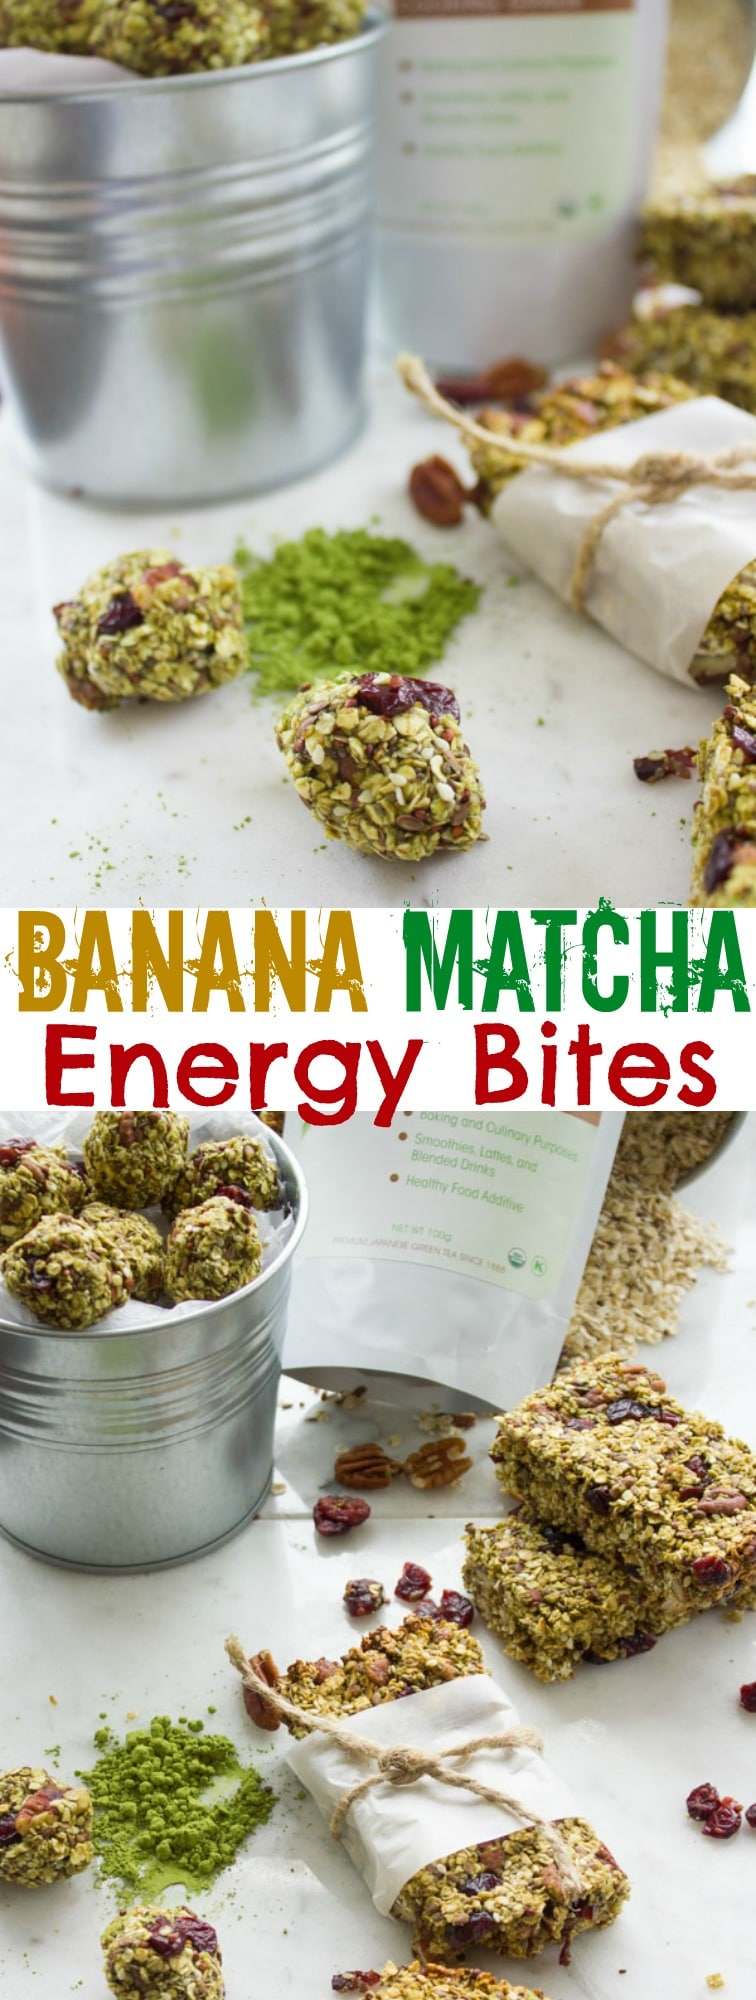 Banana Matcha Energy Bites   These are loaded with seeds, nuts and cranberries and naturally sweetened andflavoredwith bananas—so no sugar added.  Shape them into balls or granola bars for the perfect healthy on-the-go breakfast or snack! Slightly crispy on the outside and ultra chewy on the inside, these are so much better than any store-bought granola bar and so easy to make! #breakfast, #homemade, #superfood, #realfood, #snack,